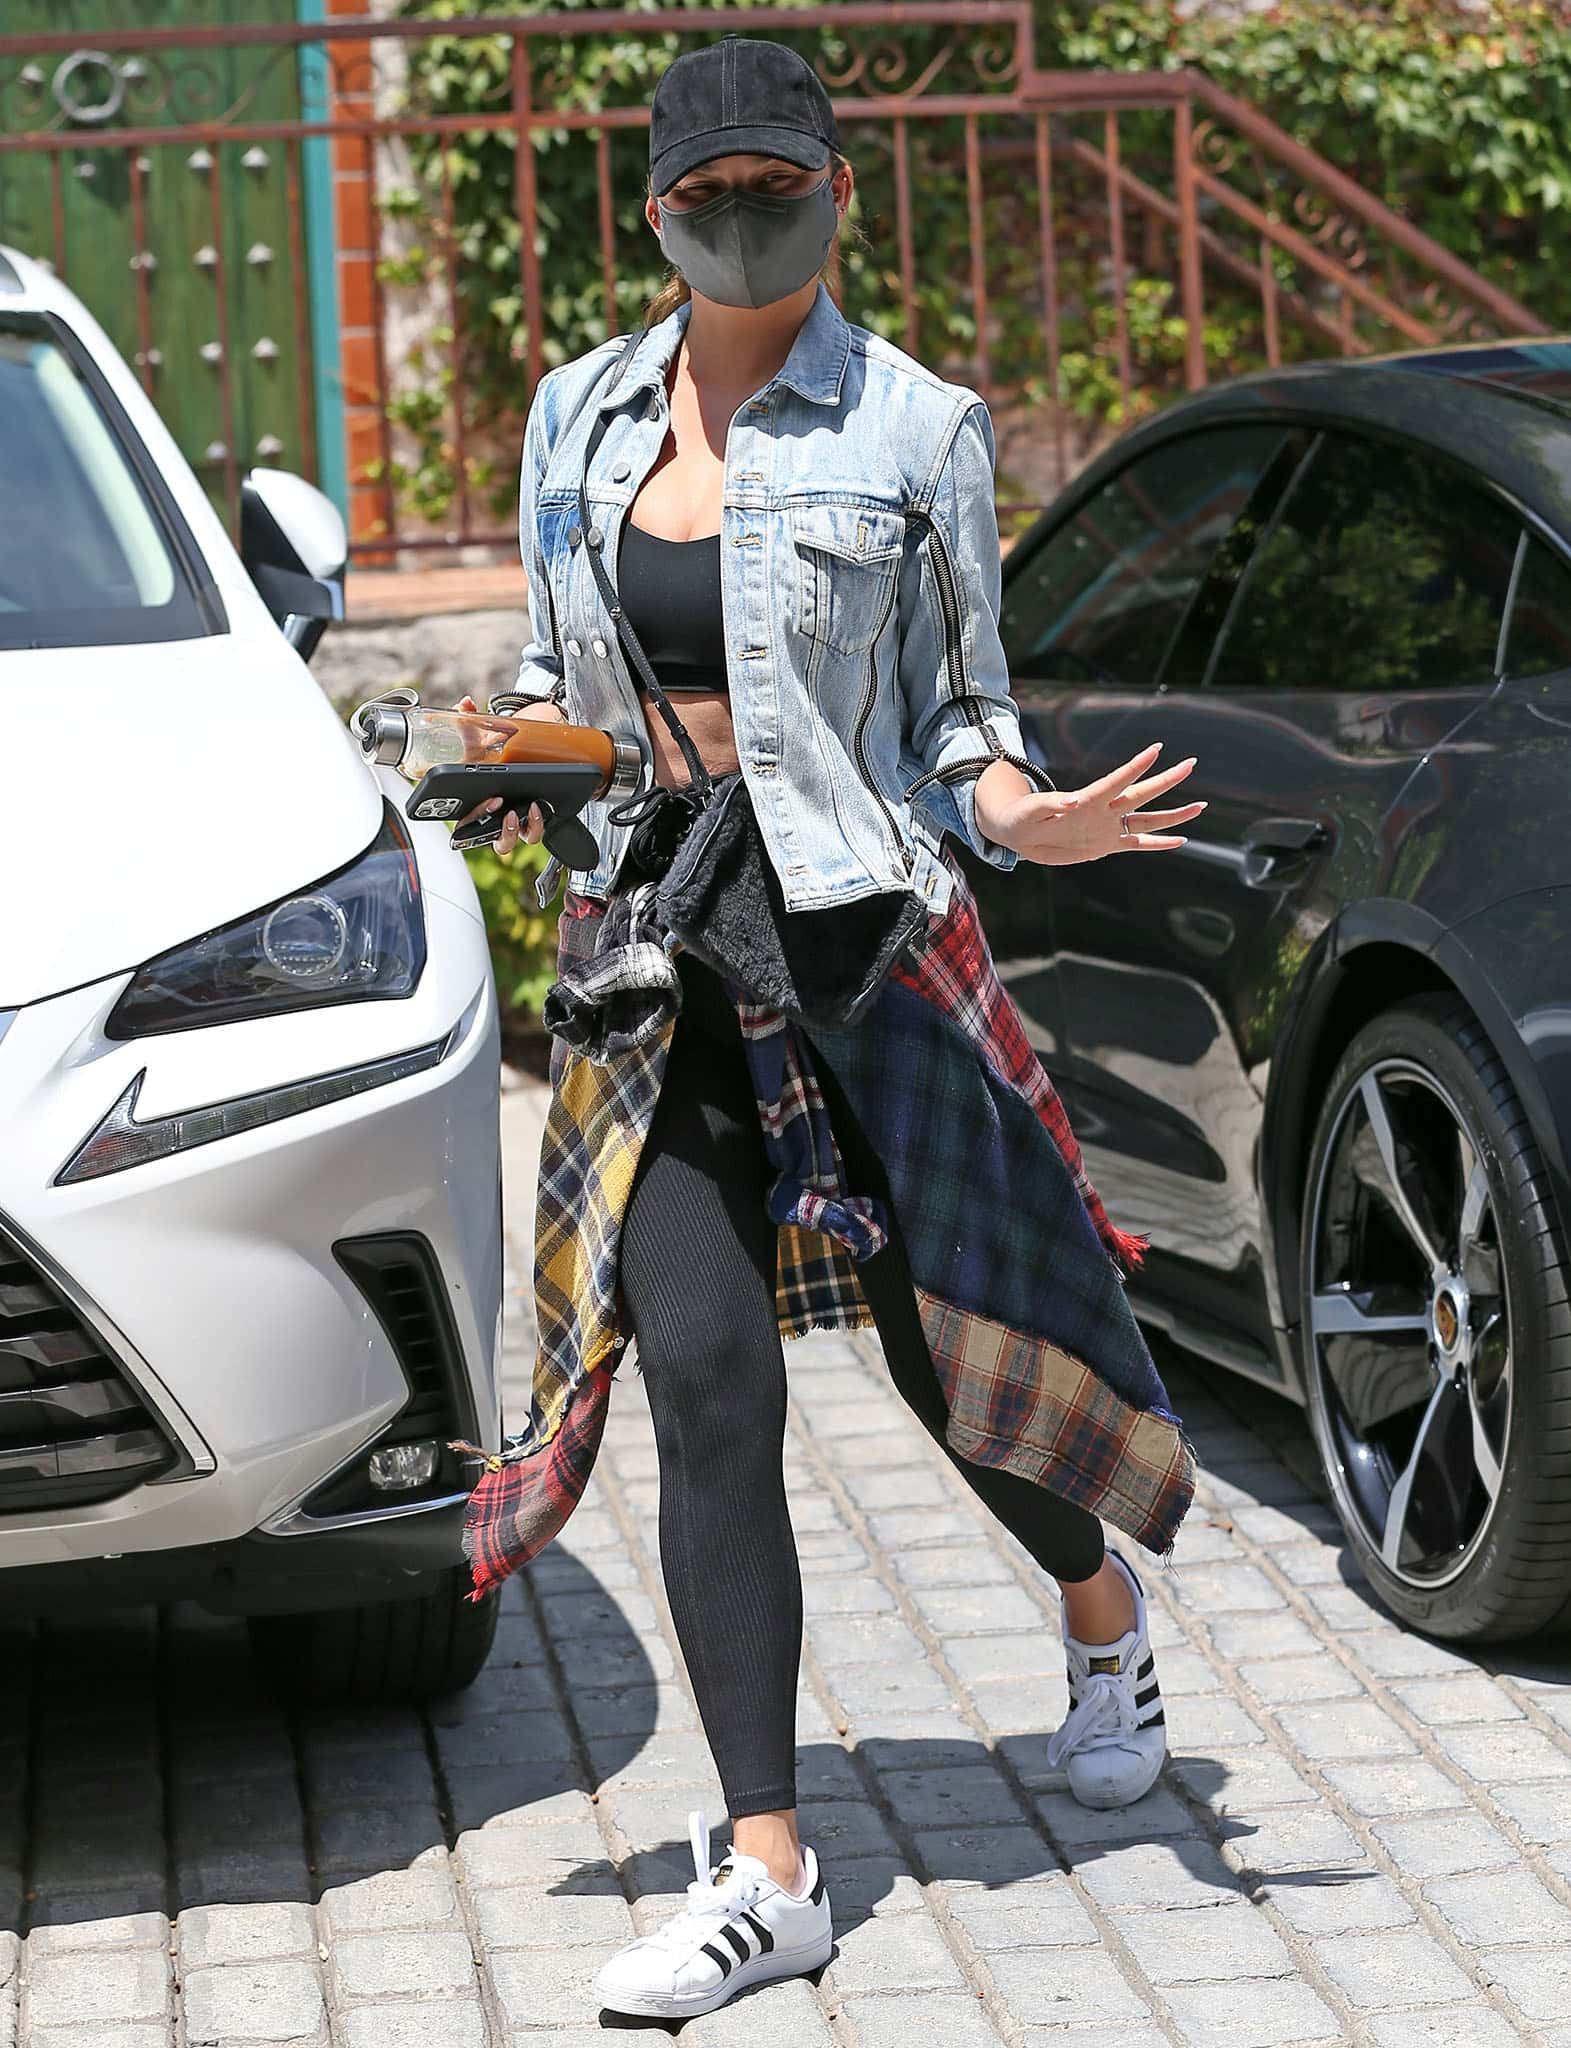 Chrissy Teigen layers a 3.1 Phillip Lim denim jacket and a plaid R13 shirt over her sports bra and leggings